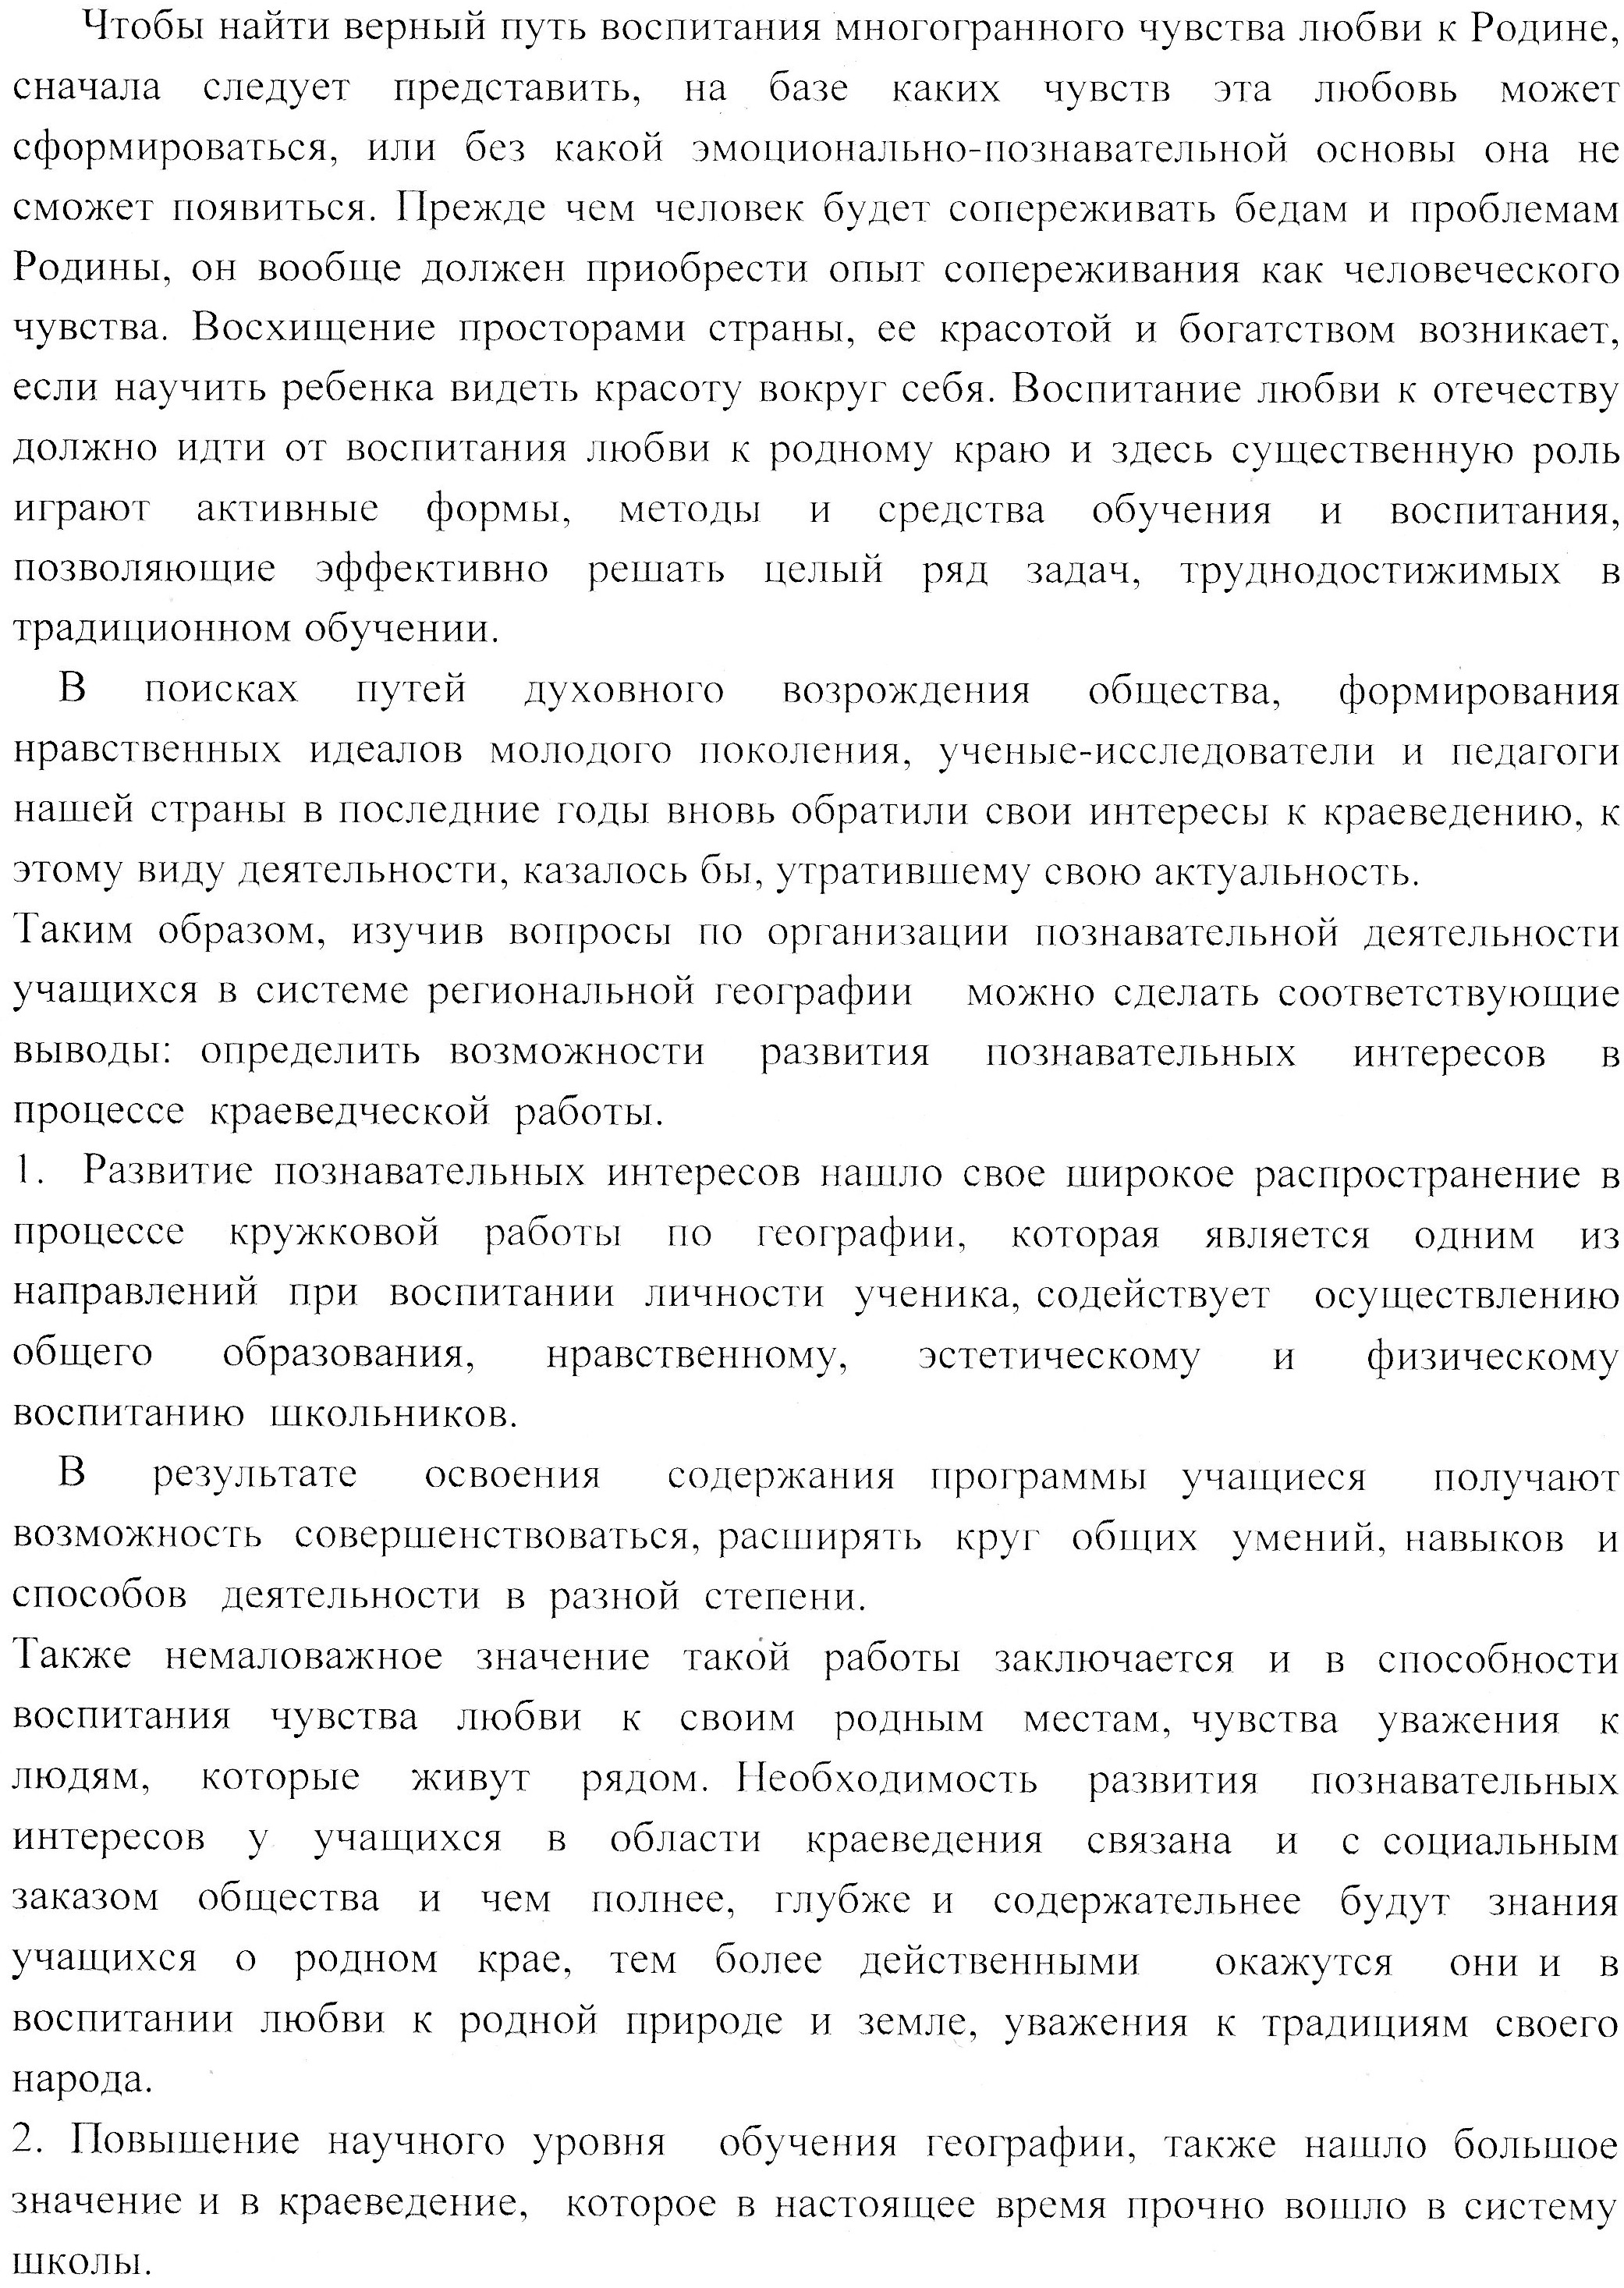 C:\Users\Manul\Pictures\img037.jpg